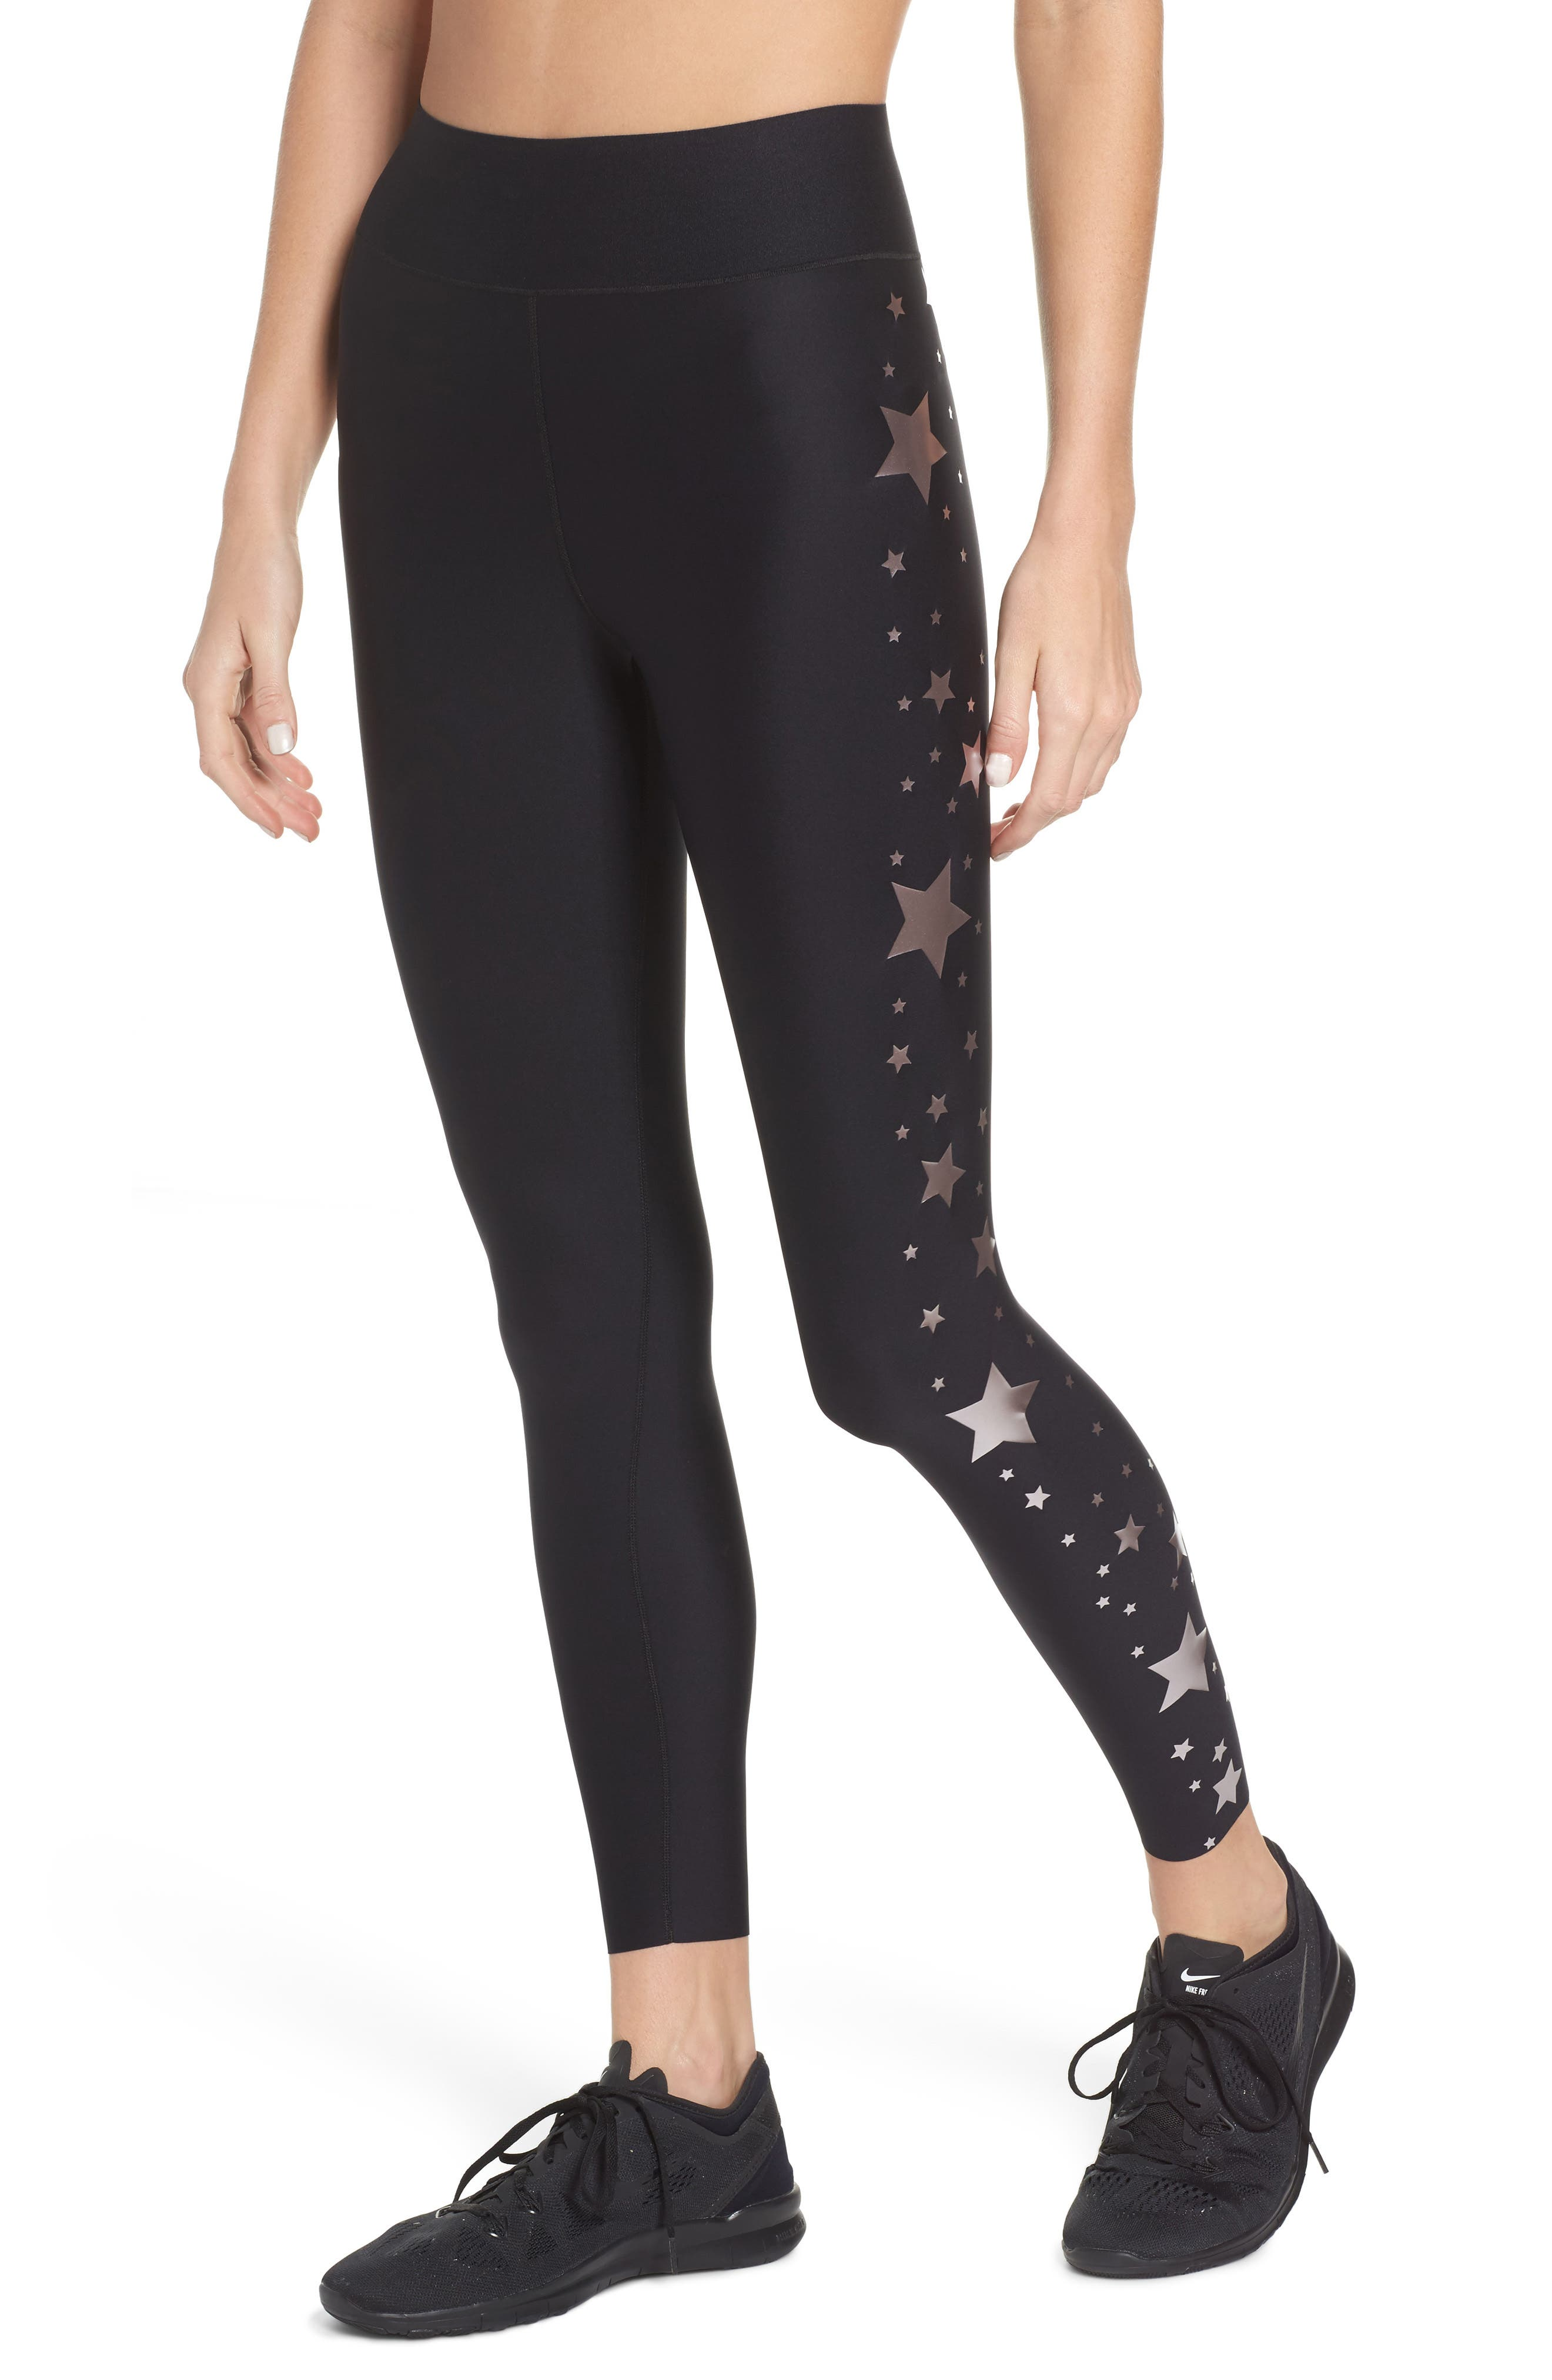 Lux Stellar High Waist Leggings,                         Main,                         color, Nero Rose